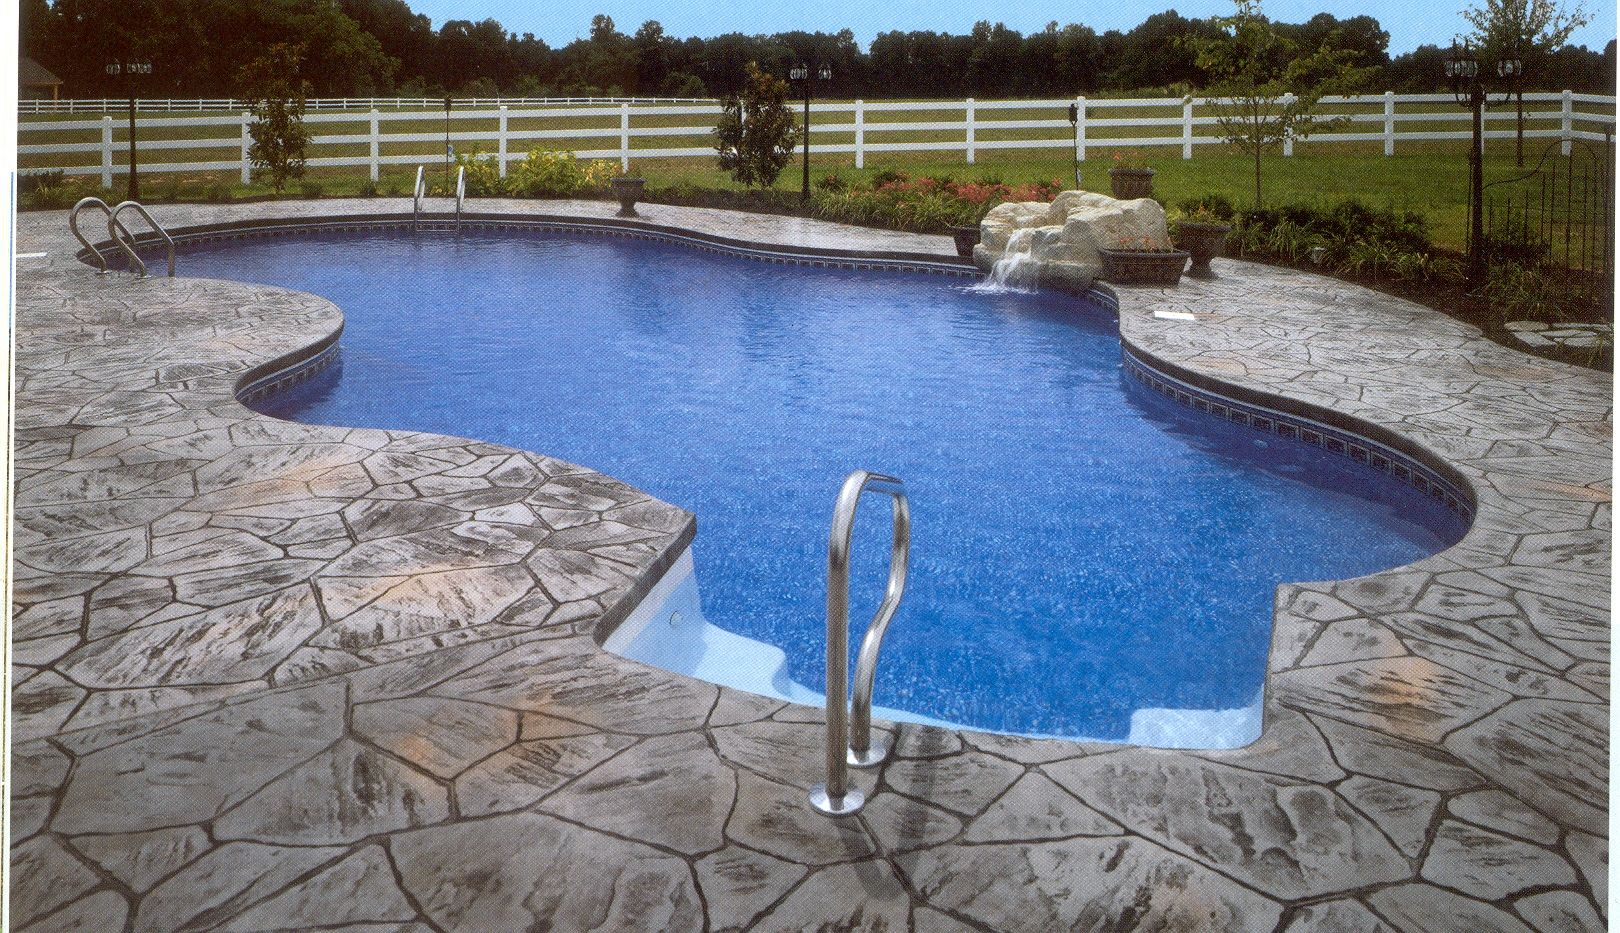 What A Cool Deck For A Mountain Lake Style Pool!